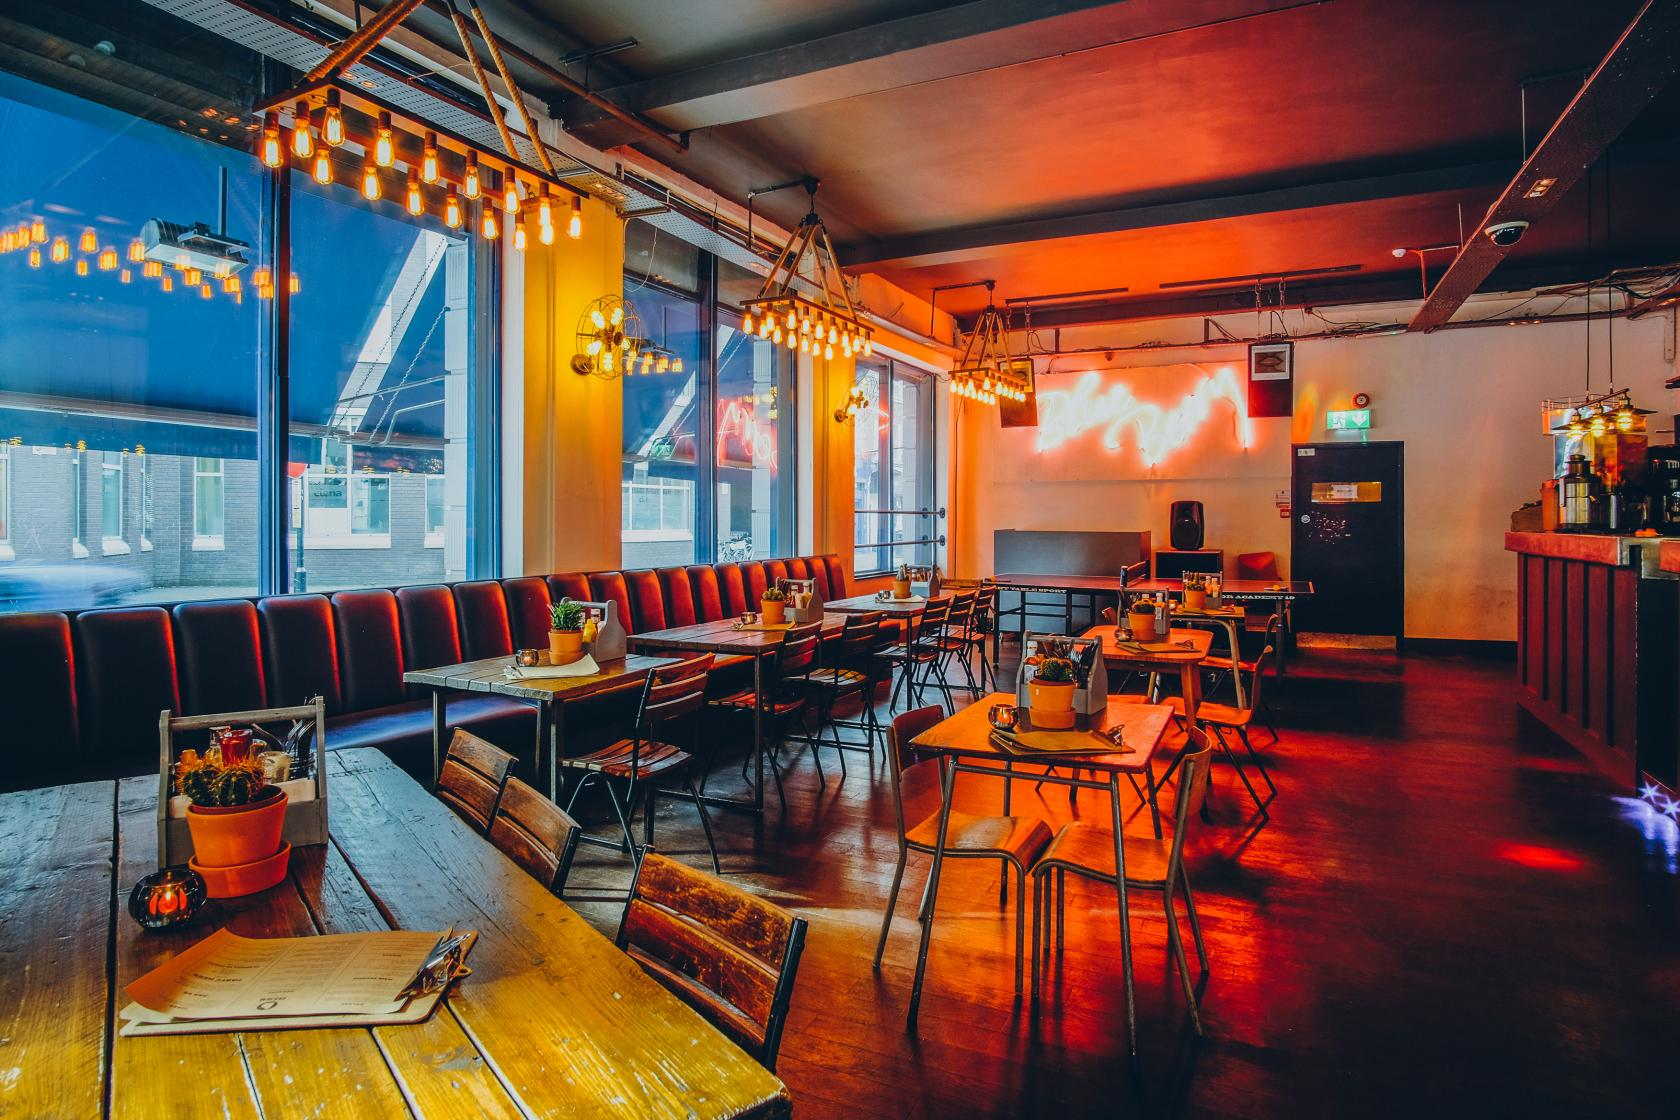 Sink for private venue hire prices reviews tagvenue for Cafe le jardin bell lane london